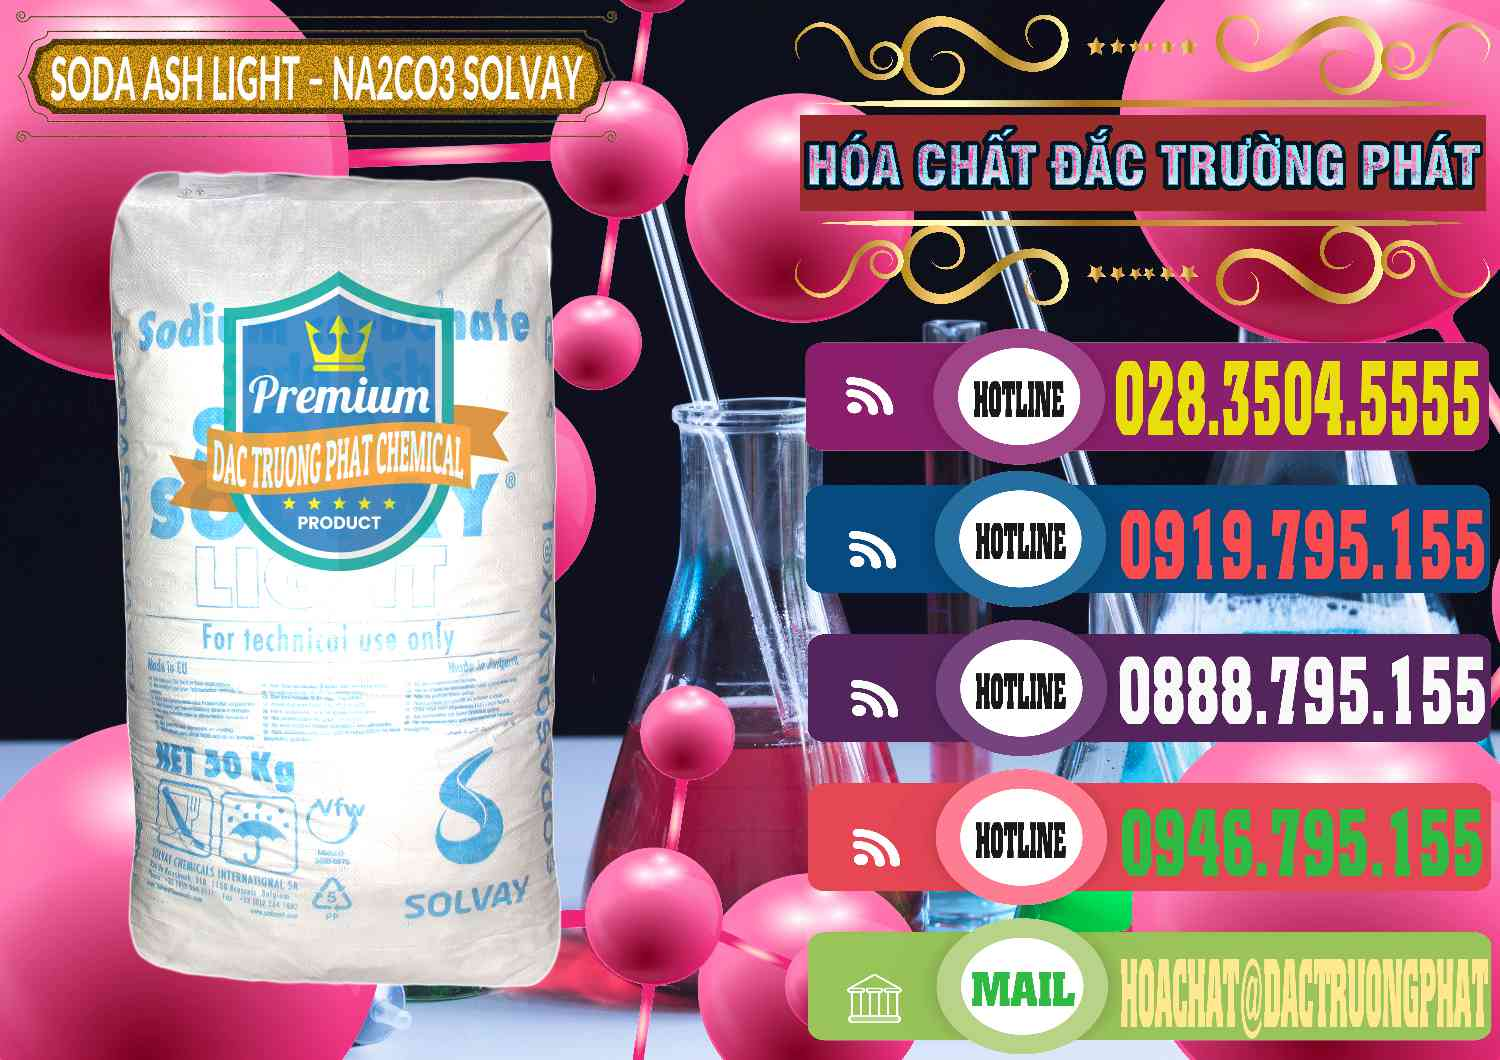 Công ty kinh doanh _ bán Soda Ash Light - NA2CO3 Solvay Bulgaria – 0138 - Chuyên phân phối và kinh doanh hóa chất tại TP.HCM